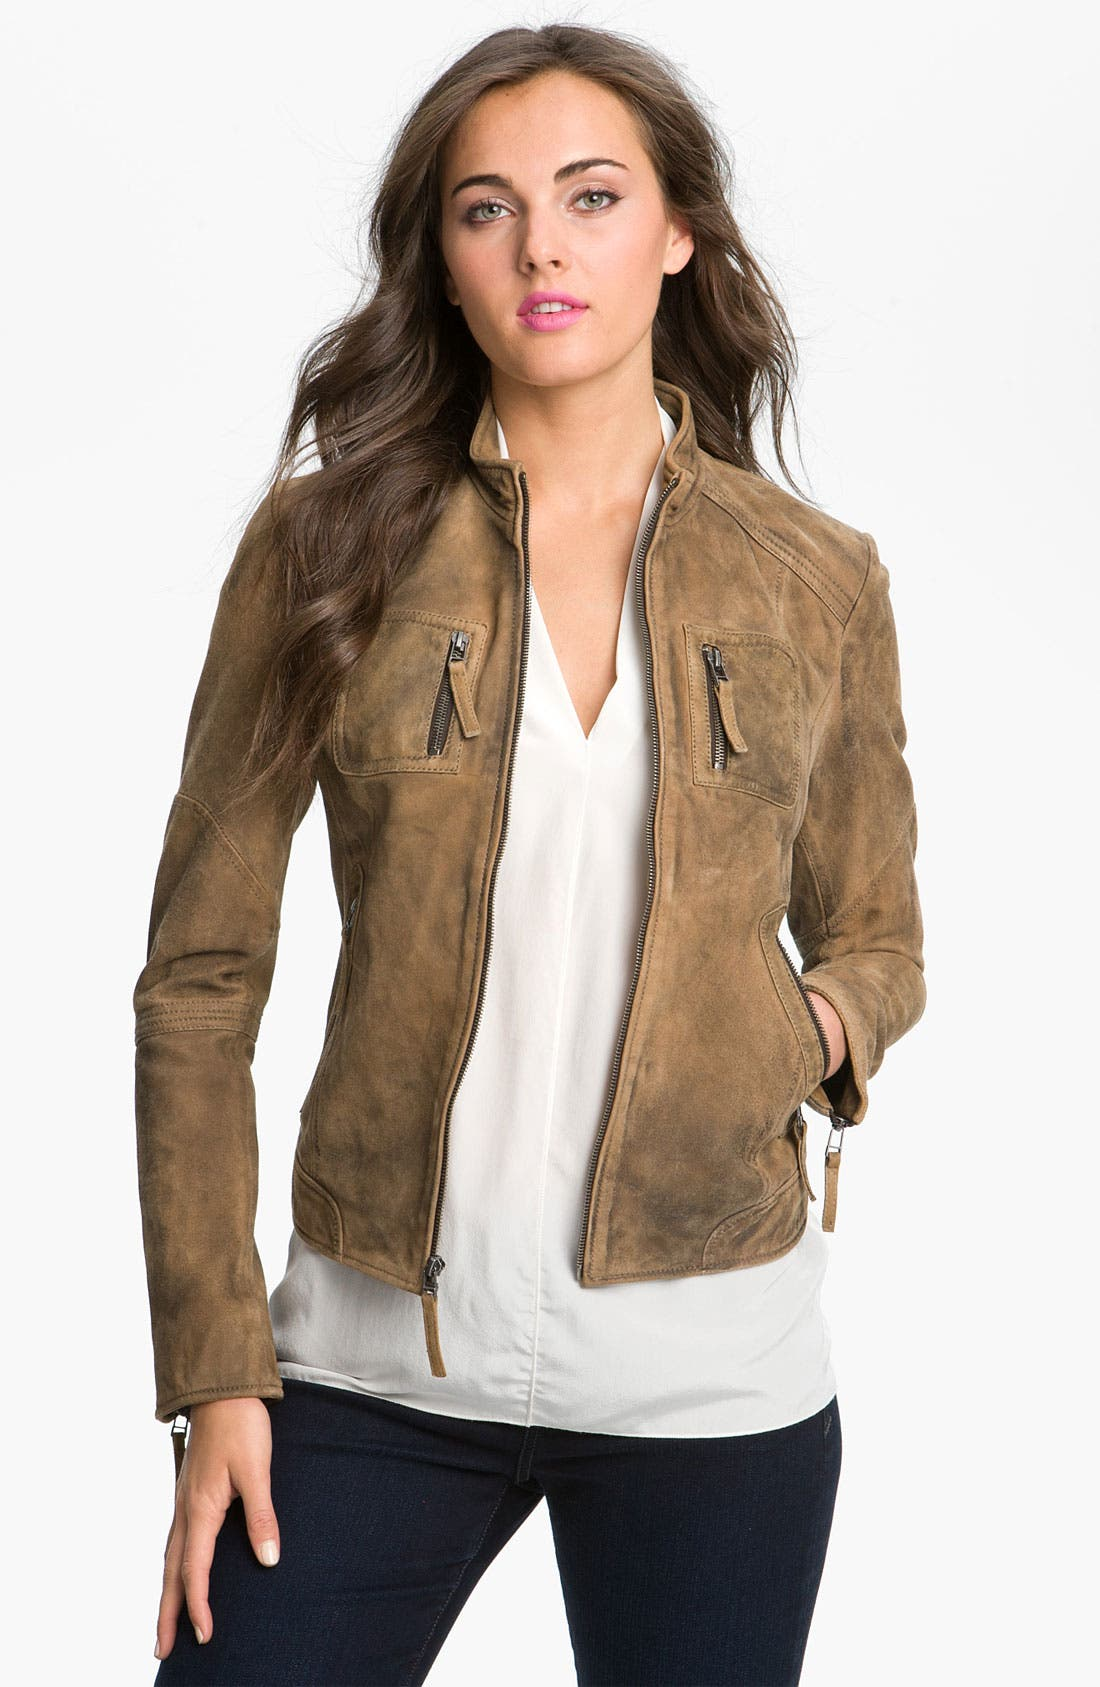 BUFFALO BY DAVID BITTON Distressed Leather Jacket, Main, color, 250